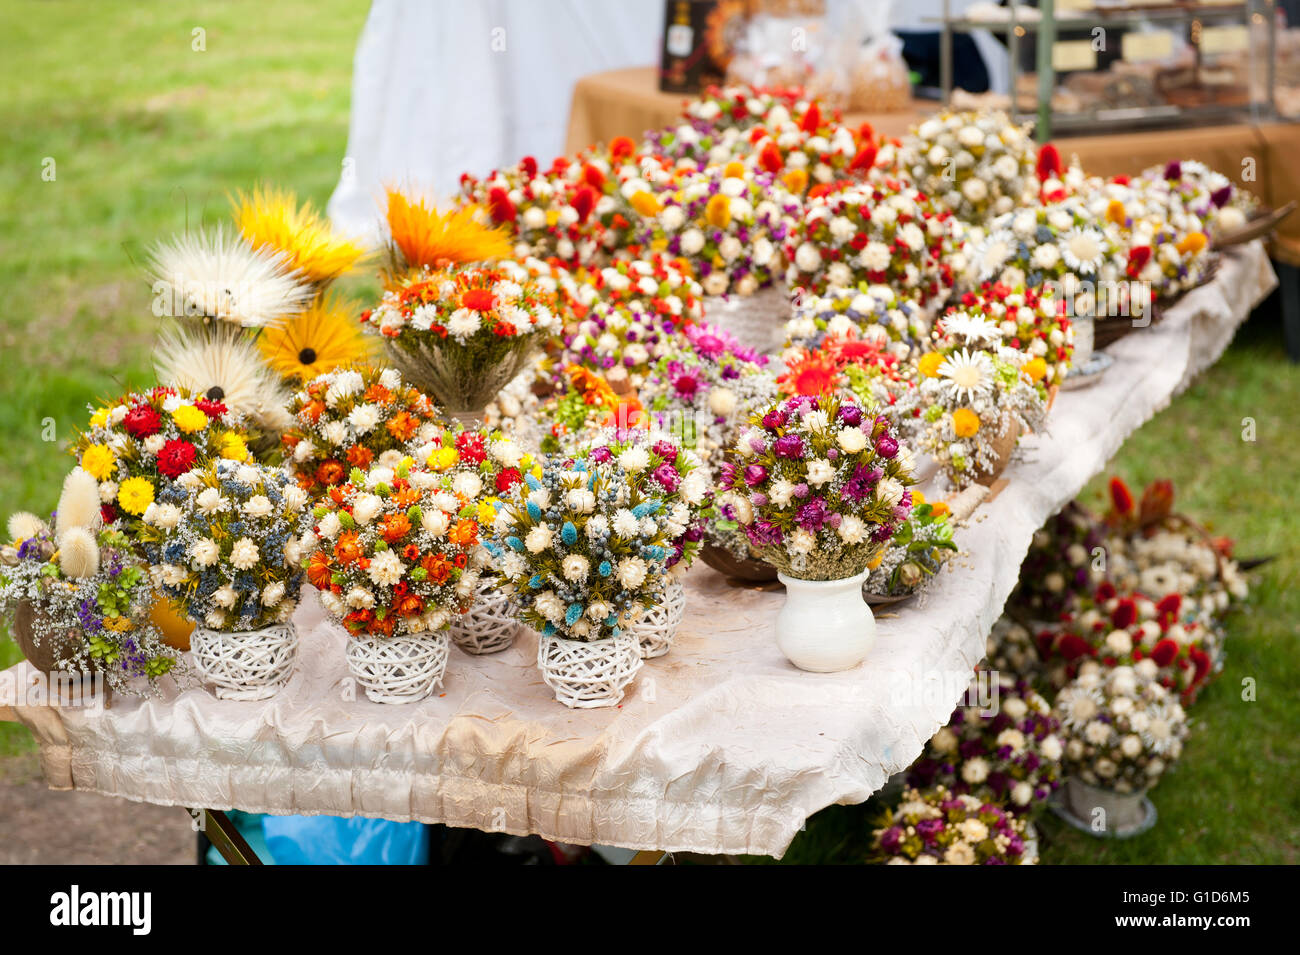 Dry flowers arrangements at fair on May day picnic in Janowiec Castle in Poland, leisure during Swedes invasion - Stock Image